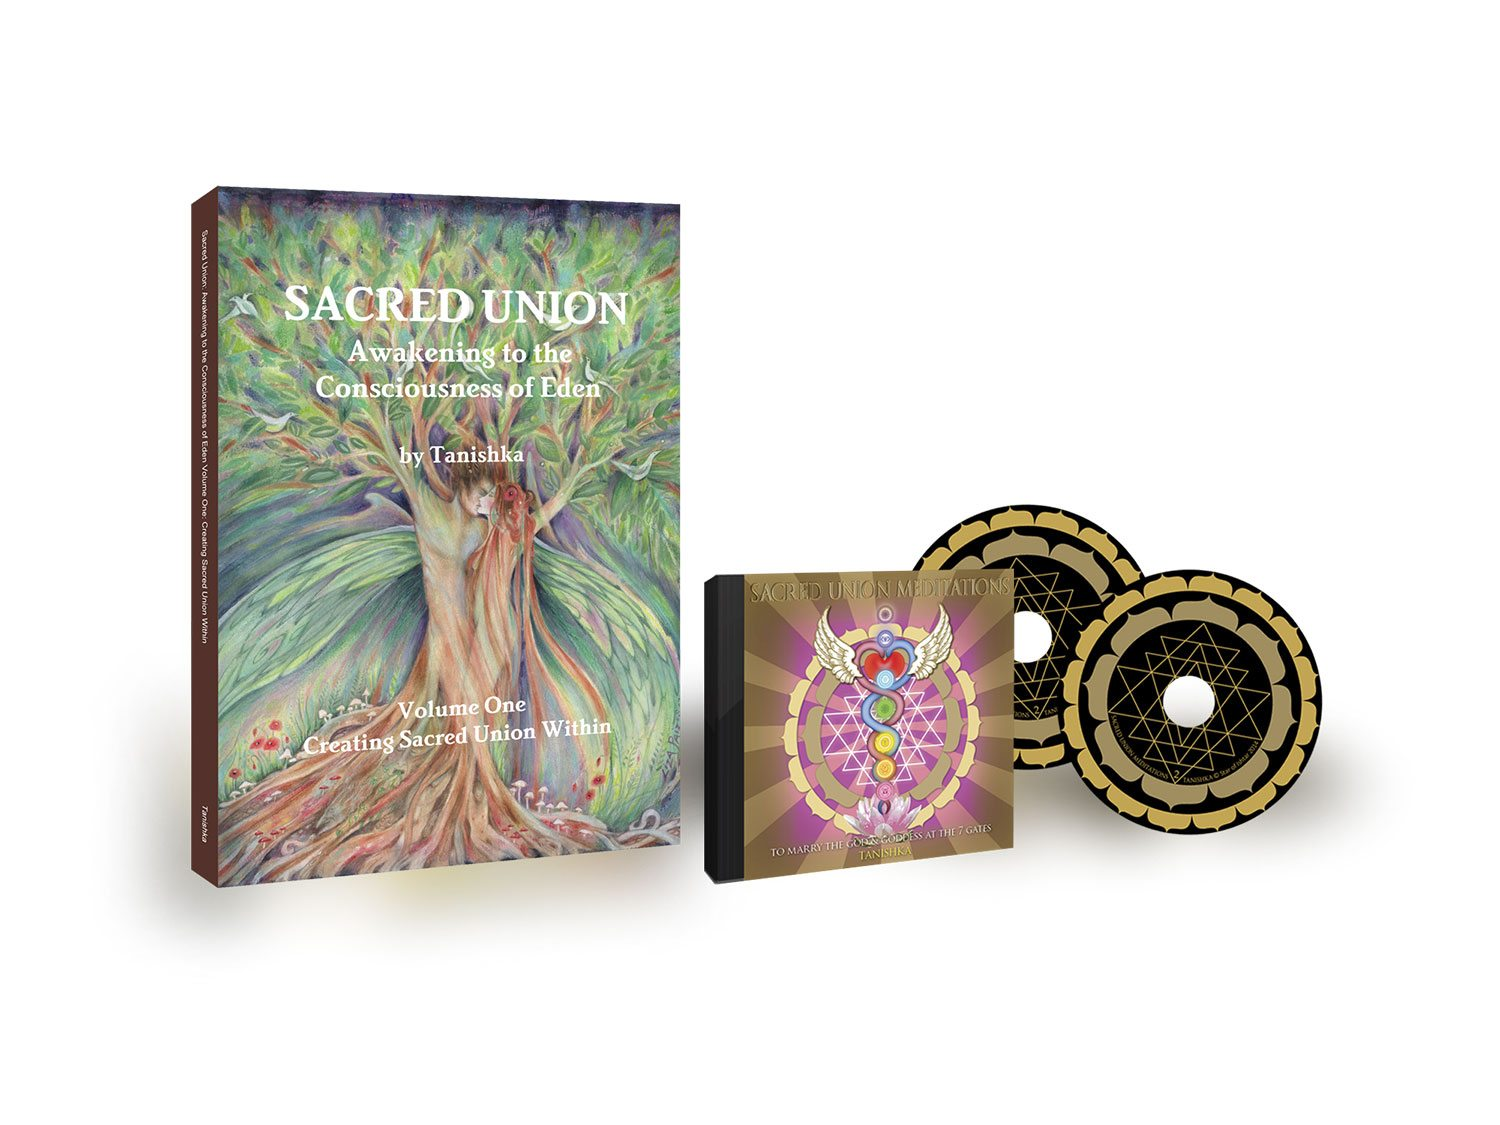 Sacred Union Volume One Book & Sacred Union Double CD Combo!